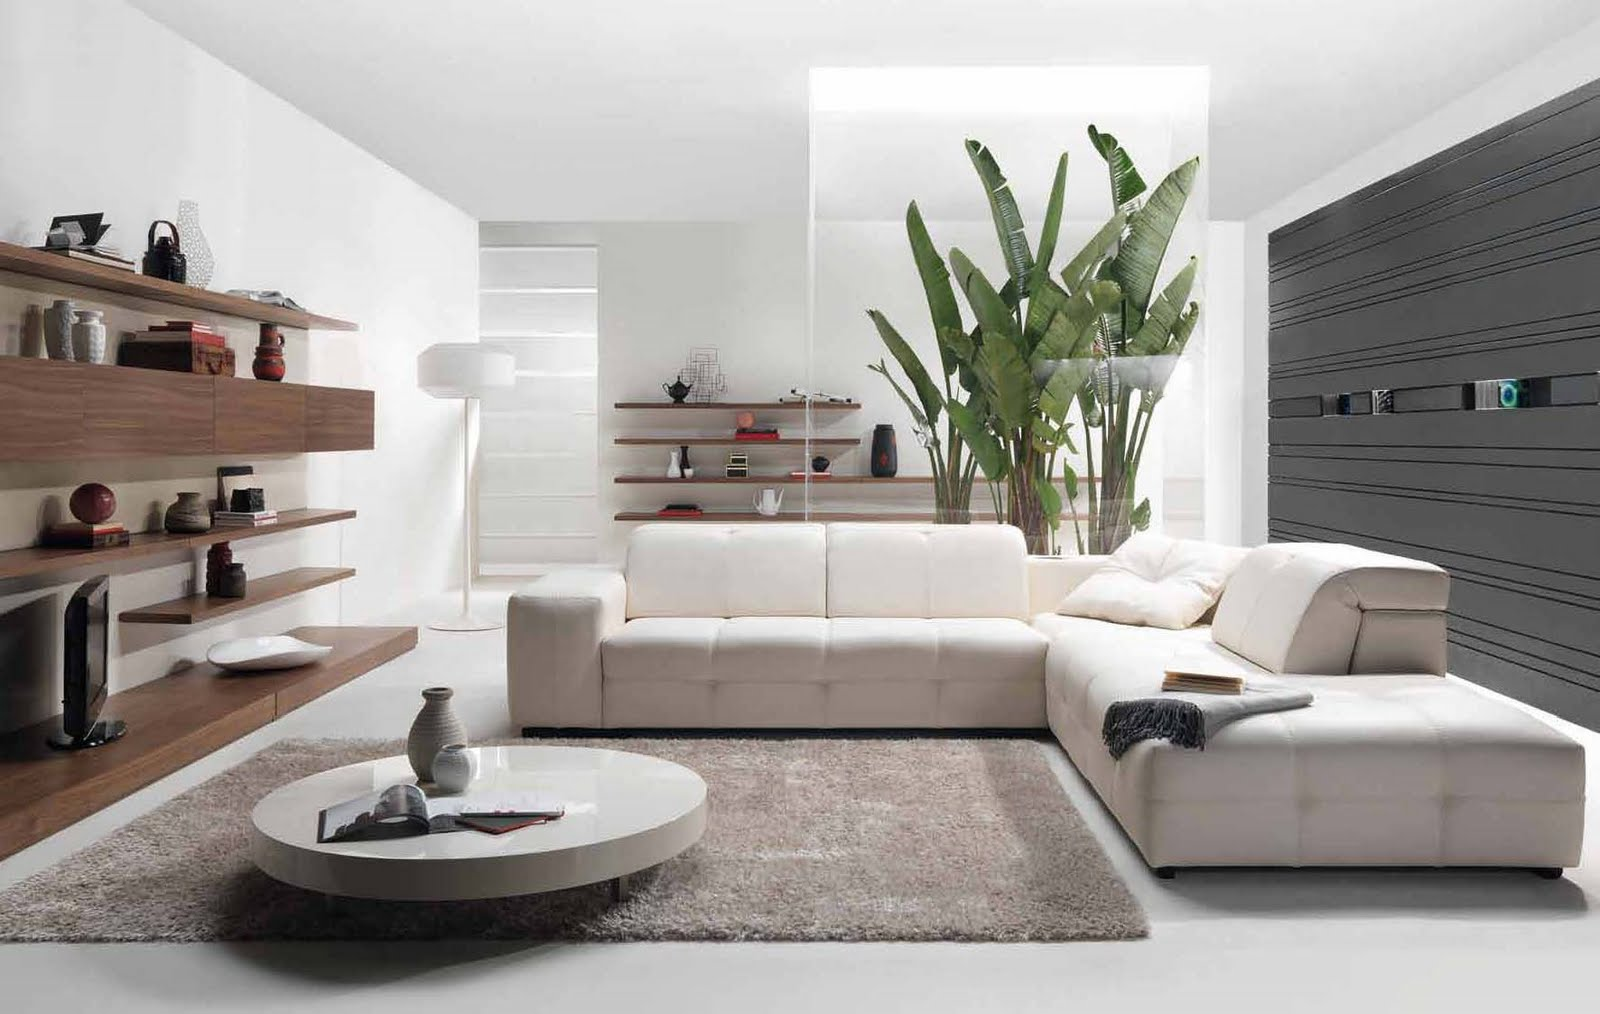 Future house design modern living room interior design for Interior designs modern